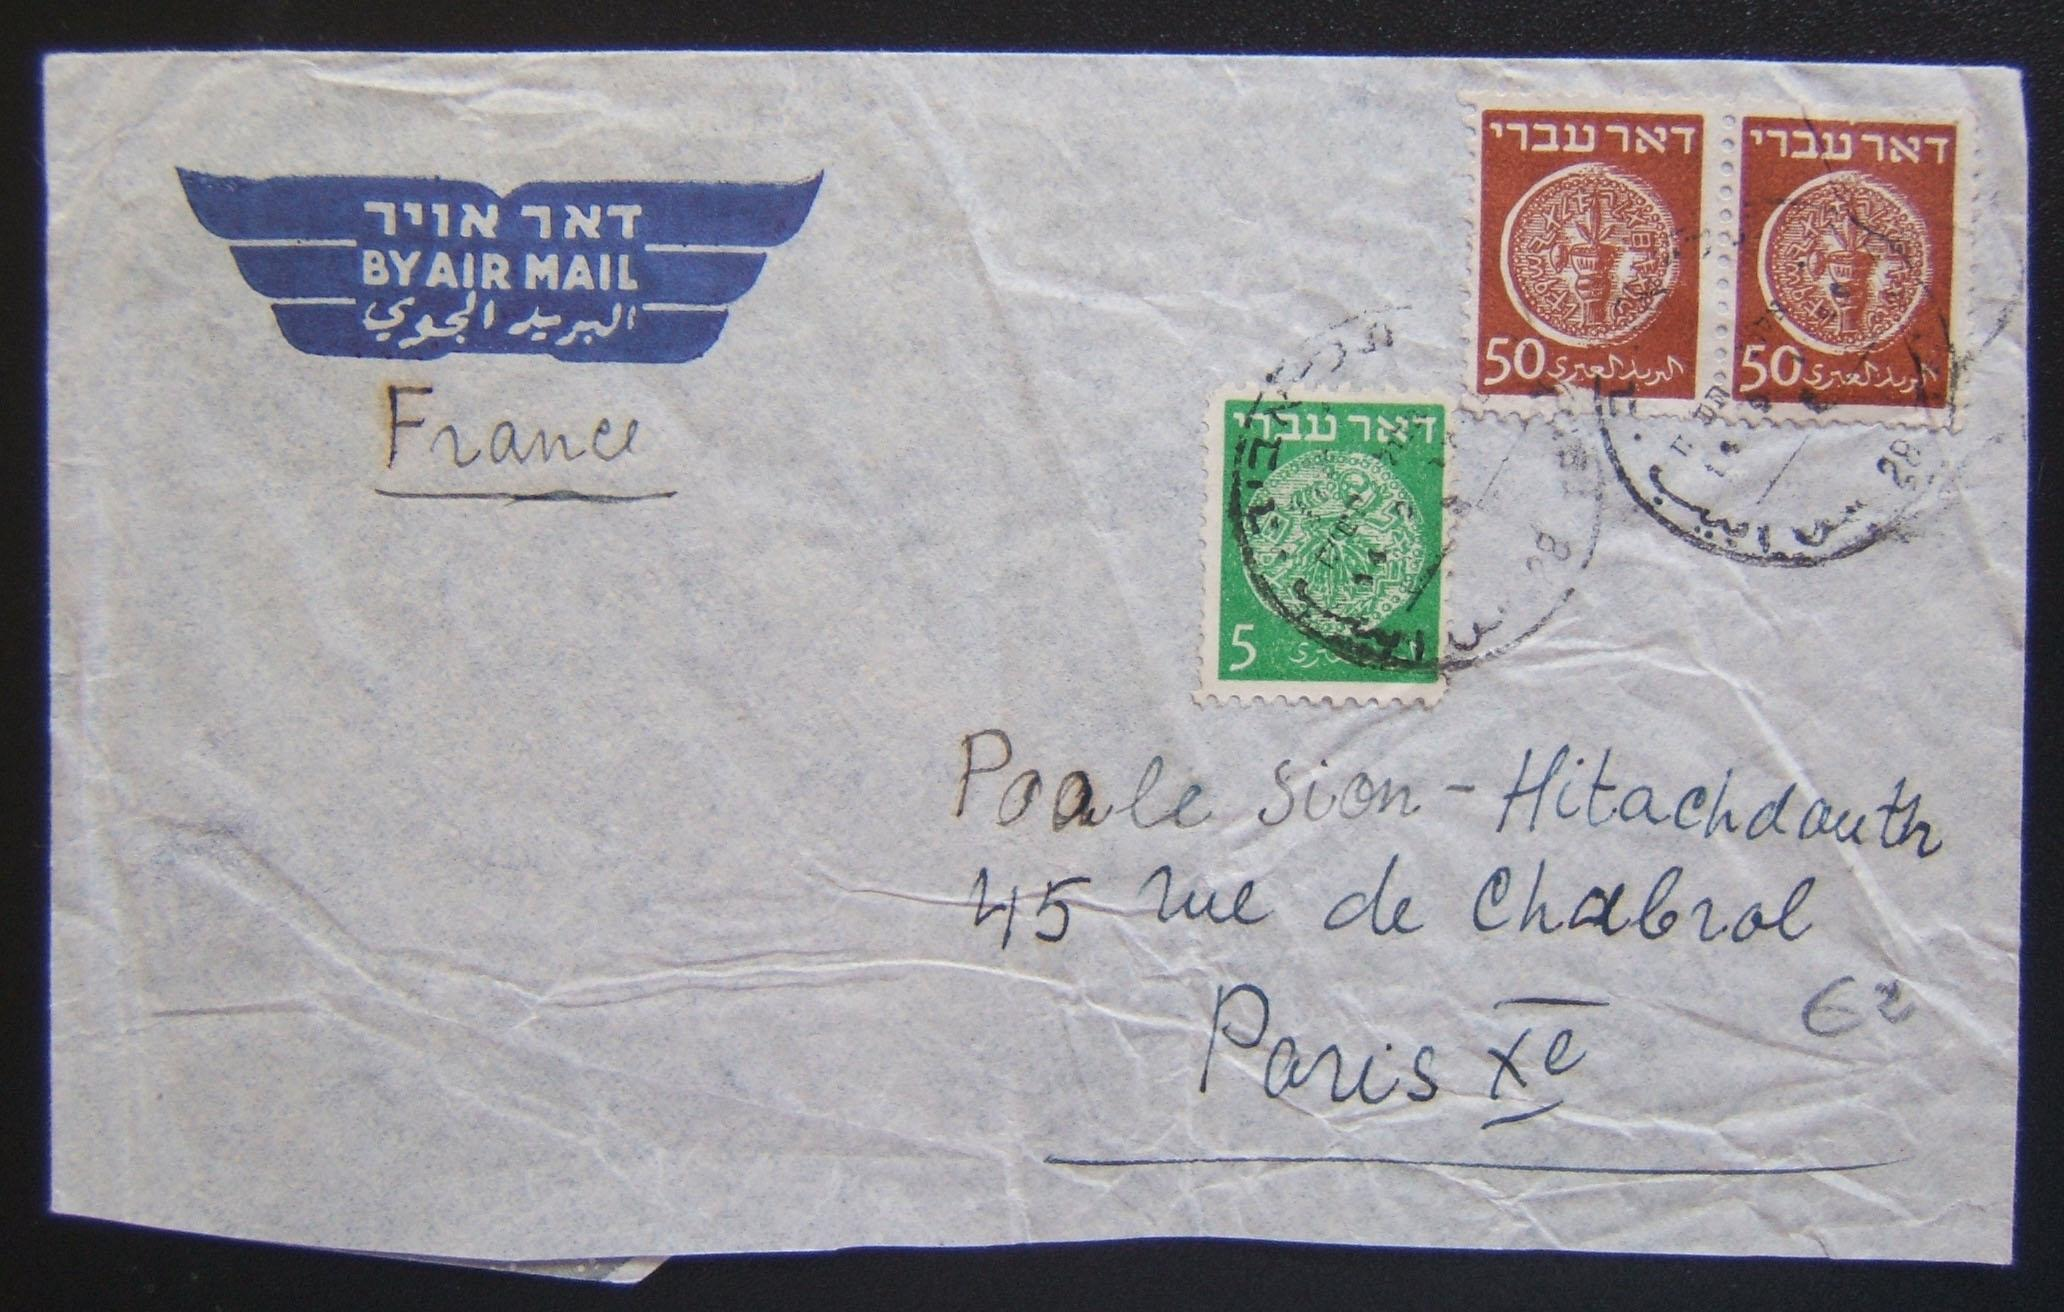 1948 1st period rate airmail: 14-9-1948 comm. a/m cv ex political movement in TLV to Poale Tzion movement in PARIS franked 105m at triple the FA-1 period rate of 35m to France (for